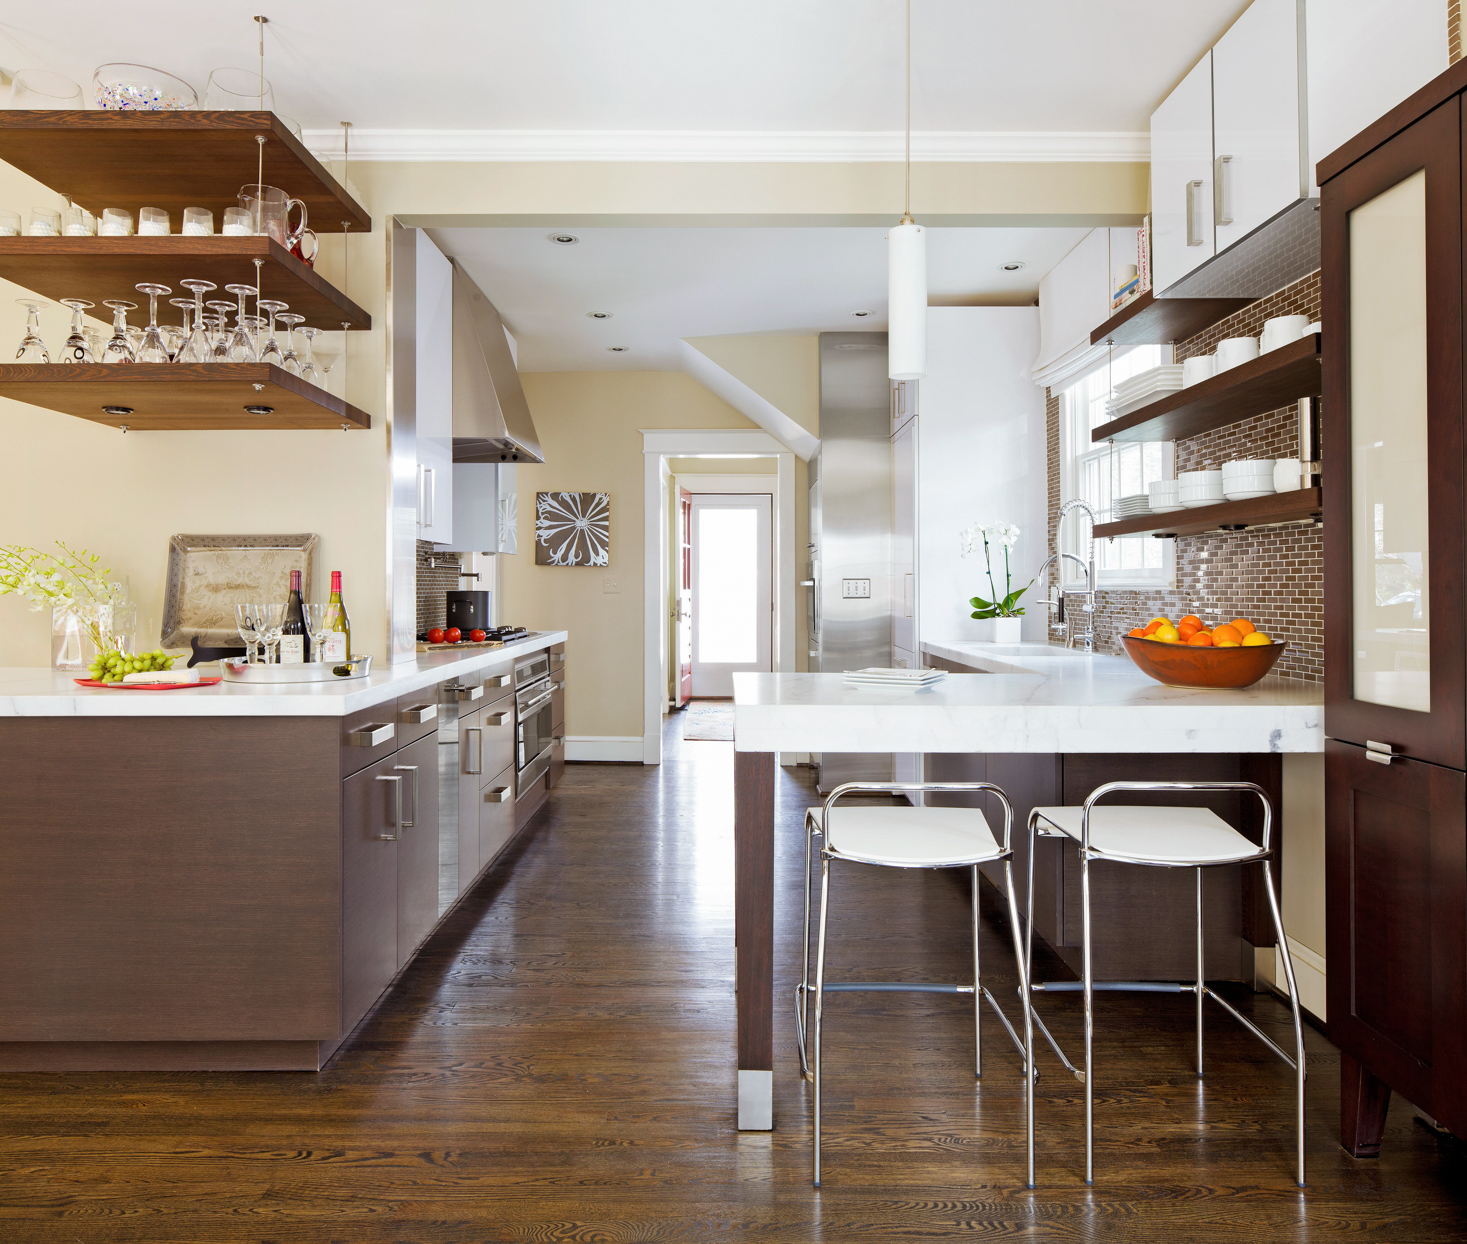 dark kitchen counter extended seating